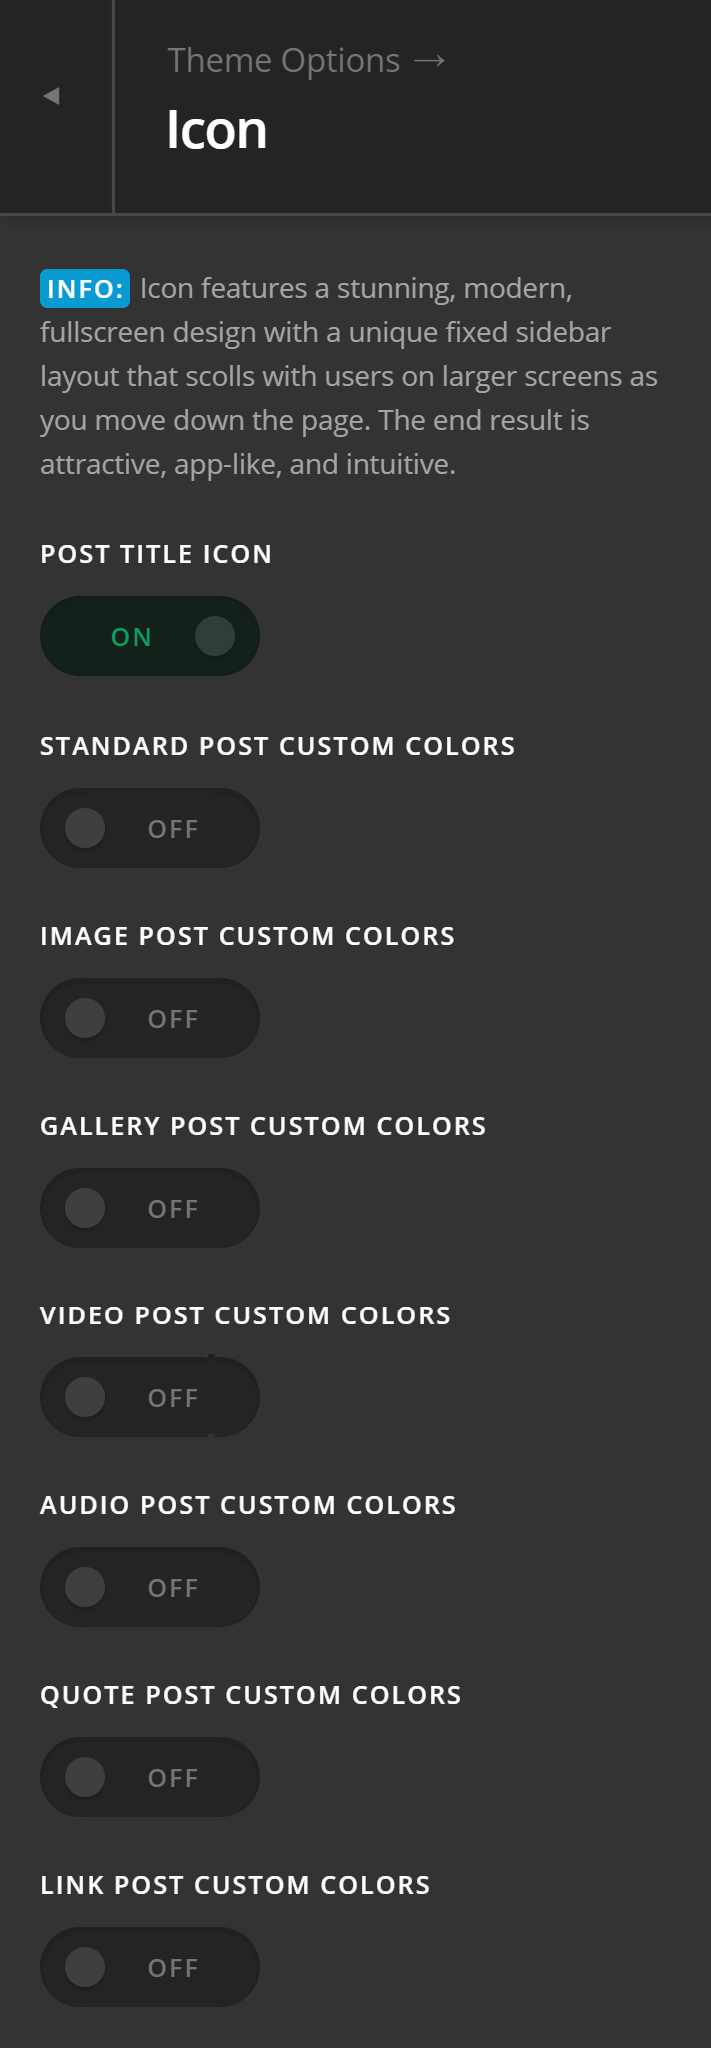 Theme Options Icon